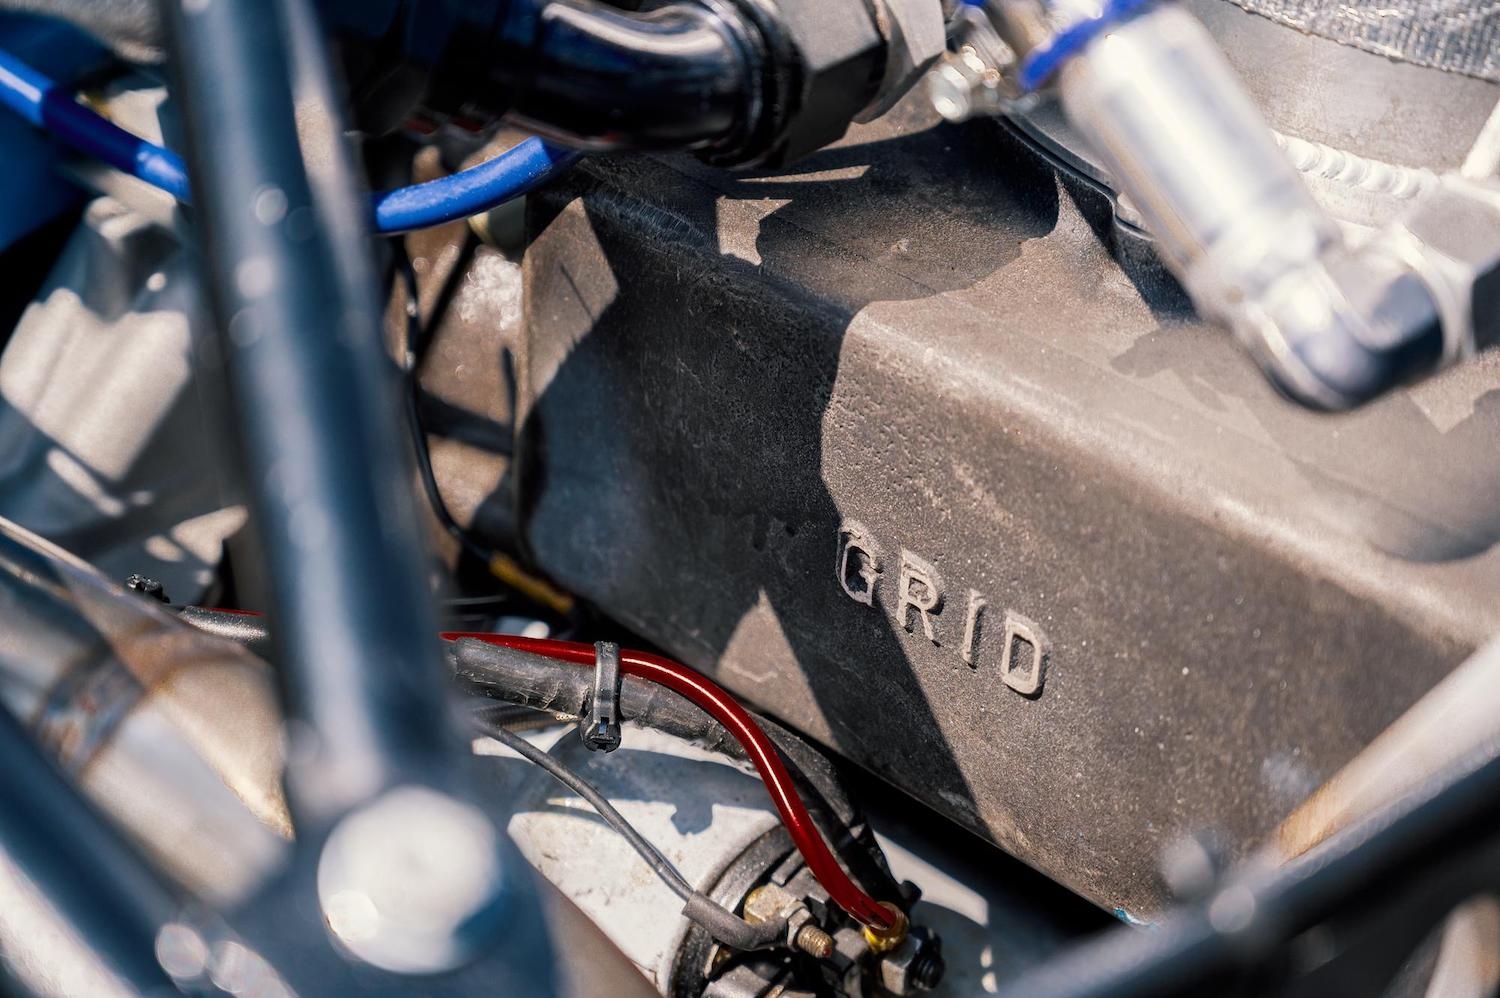 1983 Grid S2 Group C Prototype engine grid detail